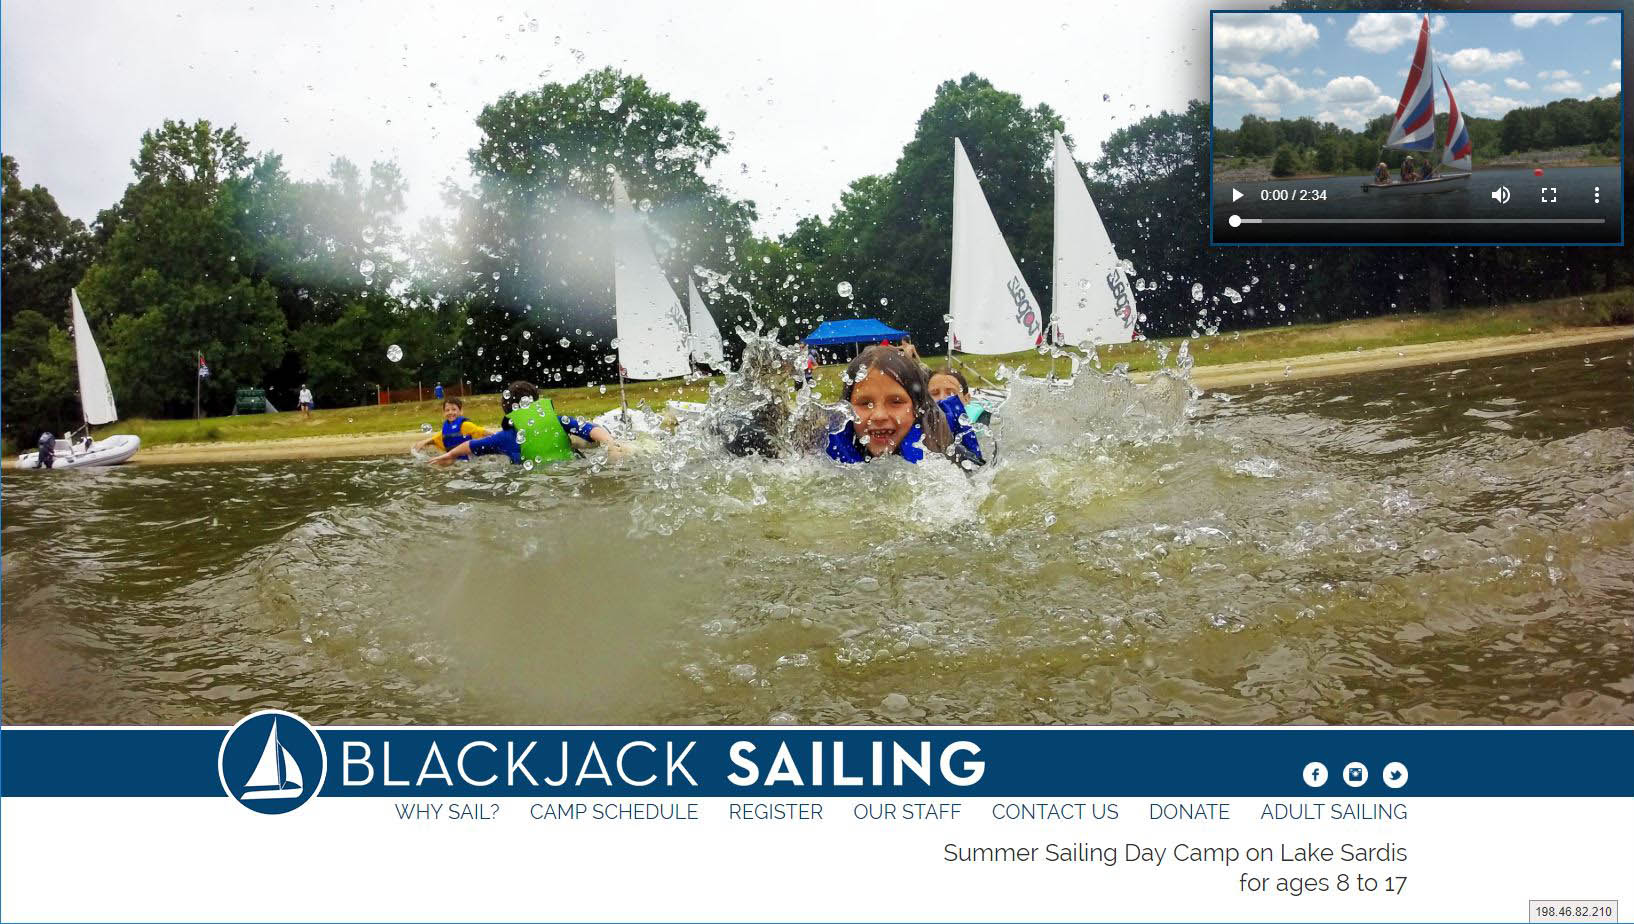 Blackjack Sailing  |  Summer sailing camp for kids